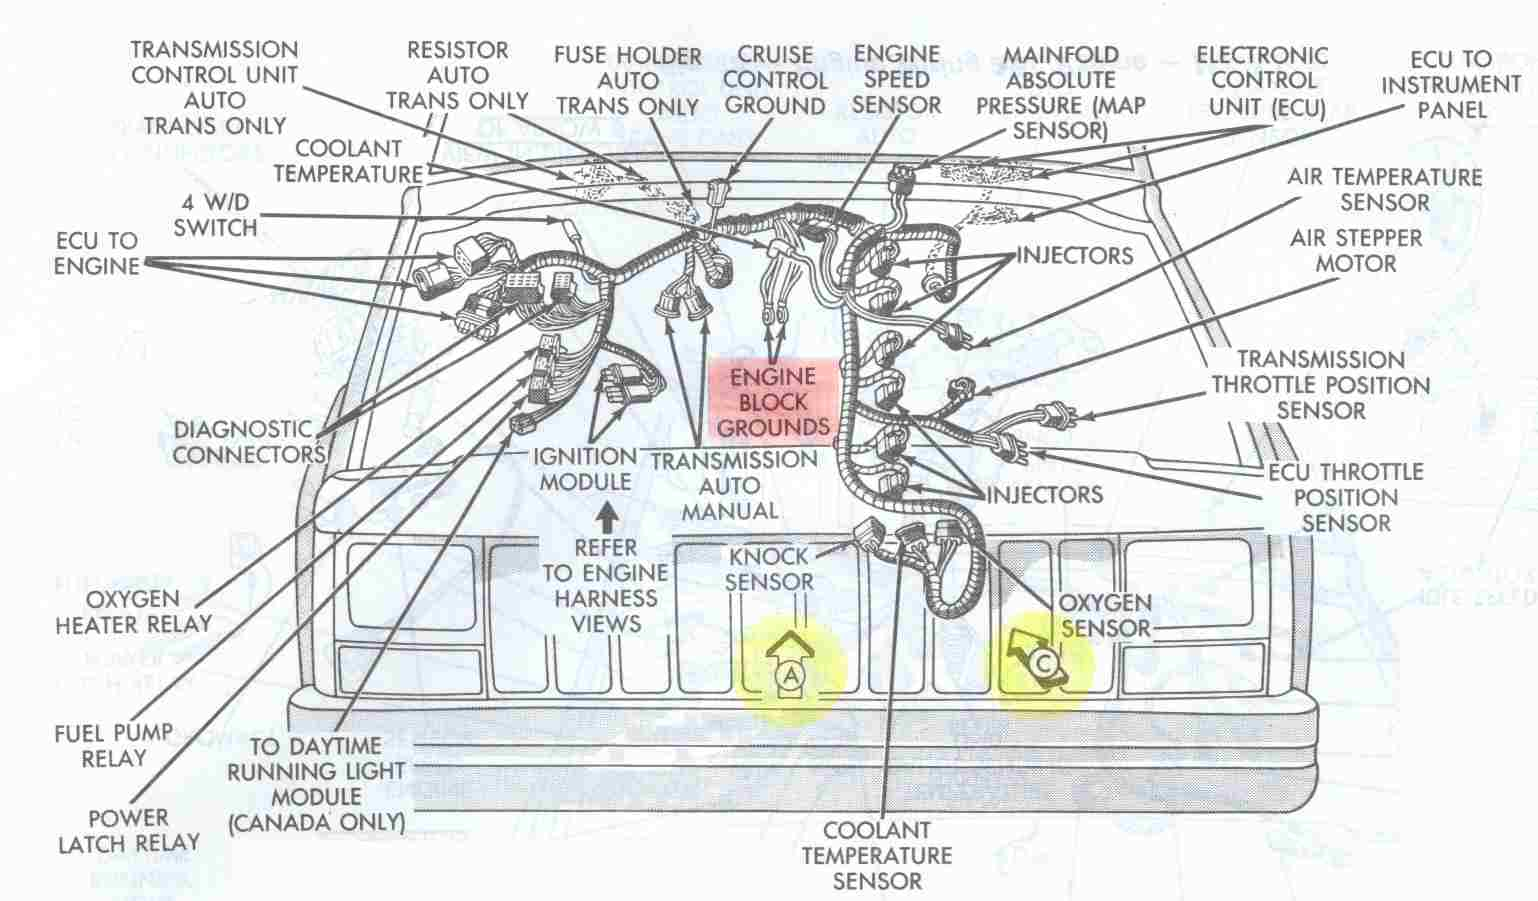 Electrical_Engine_Ground_Points_Overview 94 jeep cherokee wiring diagram 1994 jeep cherokee wiring  at bakdesigns.co